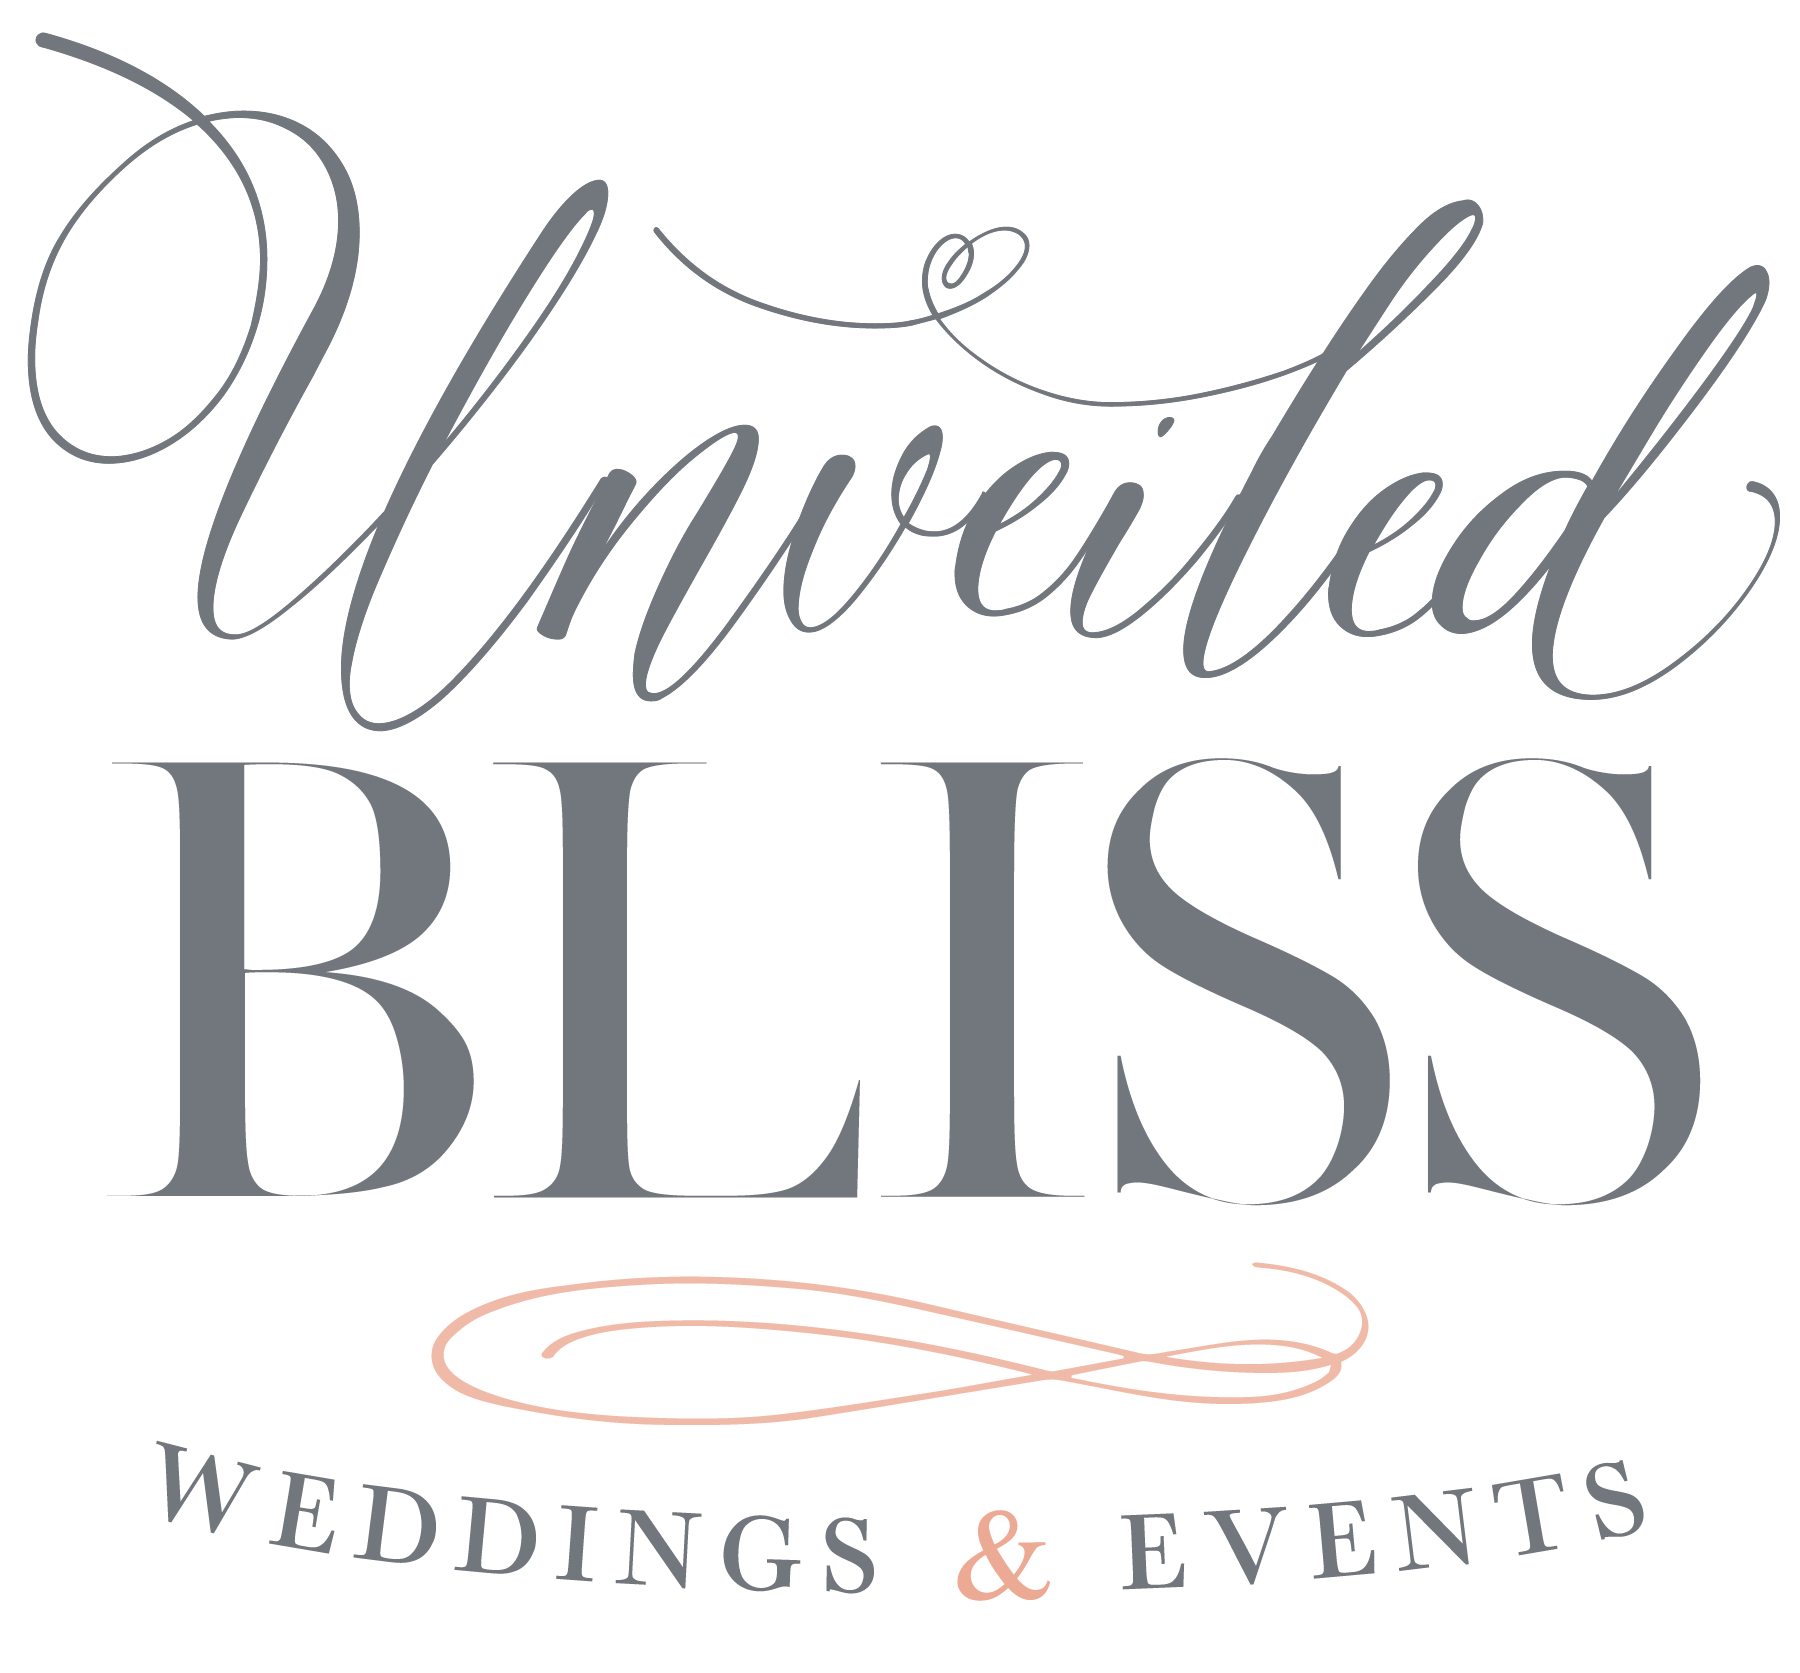 Unveiled Bliss - 'At Unveiled Bliss, connecting with our couples is a top priority. With an emphasis on connection, communication, and collaboration, we work with you to create standout memories that will last a lifetime.'Expertise: Full-Service Wedding & Event PlanningBased In: Houston, TXTaylor's Favorite Place Traveled: Turks and Caicos- I'm a total beach lover.Brittany's Favorite Place Traveled: Amsterdam- experiencing the authentic culture